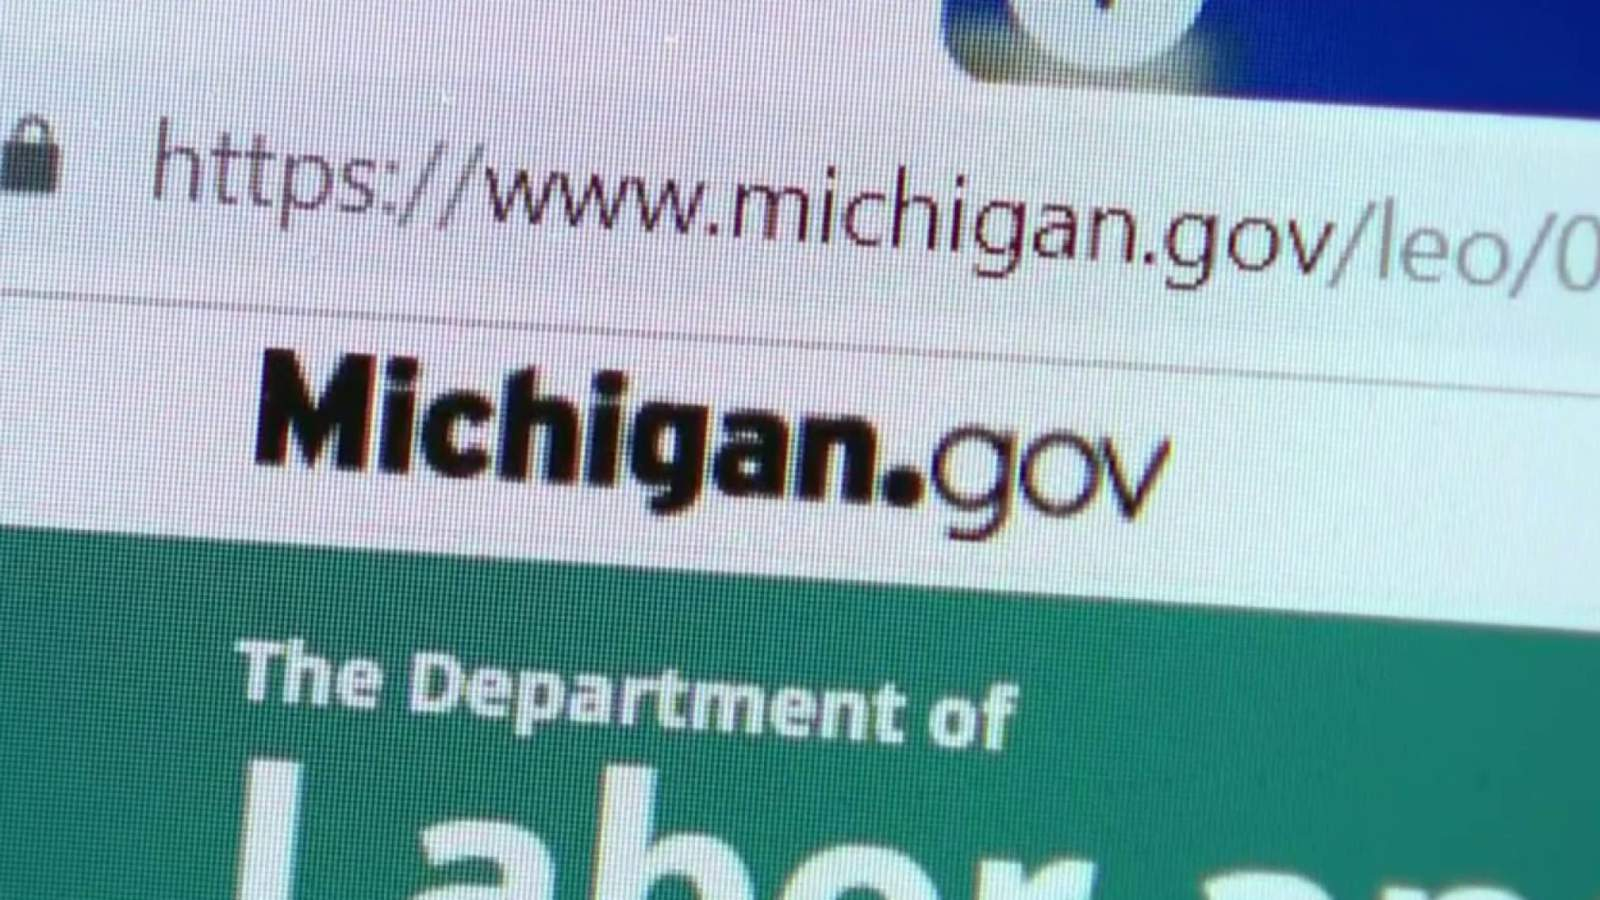 Q A Michigan Unemployment Agency Answers Questions On Several Issues